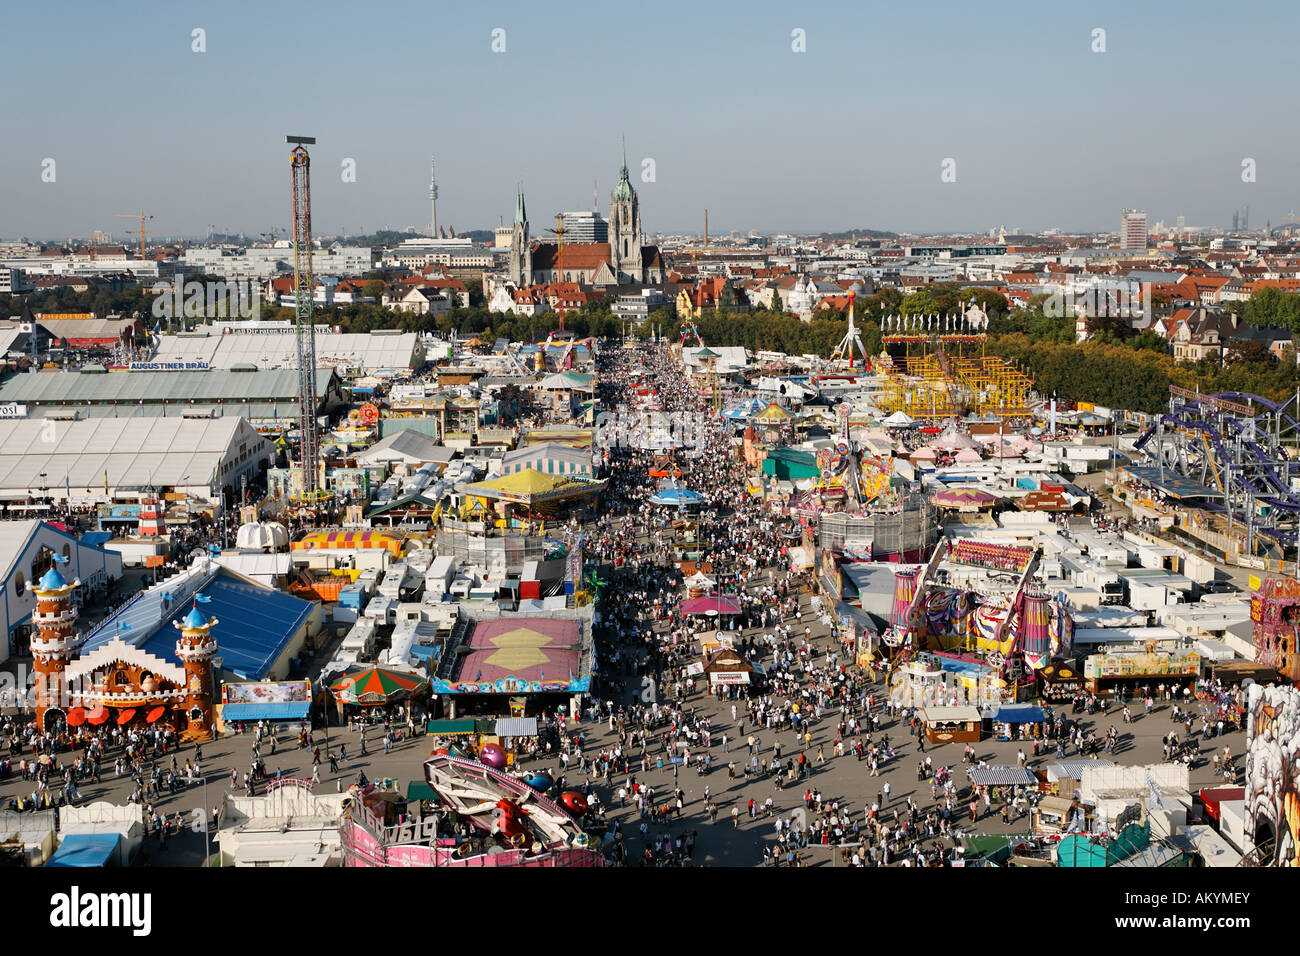 Thousands of people are walking over the Theresienwiese on the Munich Oktoberfest Bavaria Germany - Stock Image